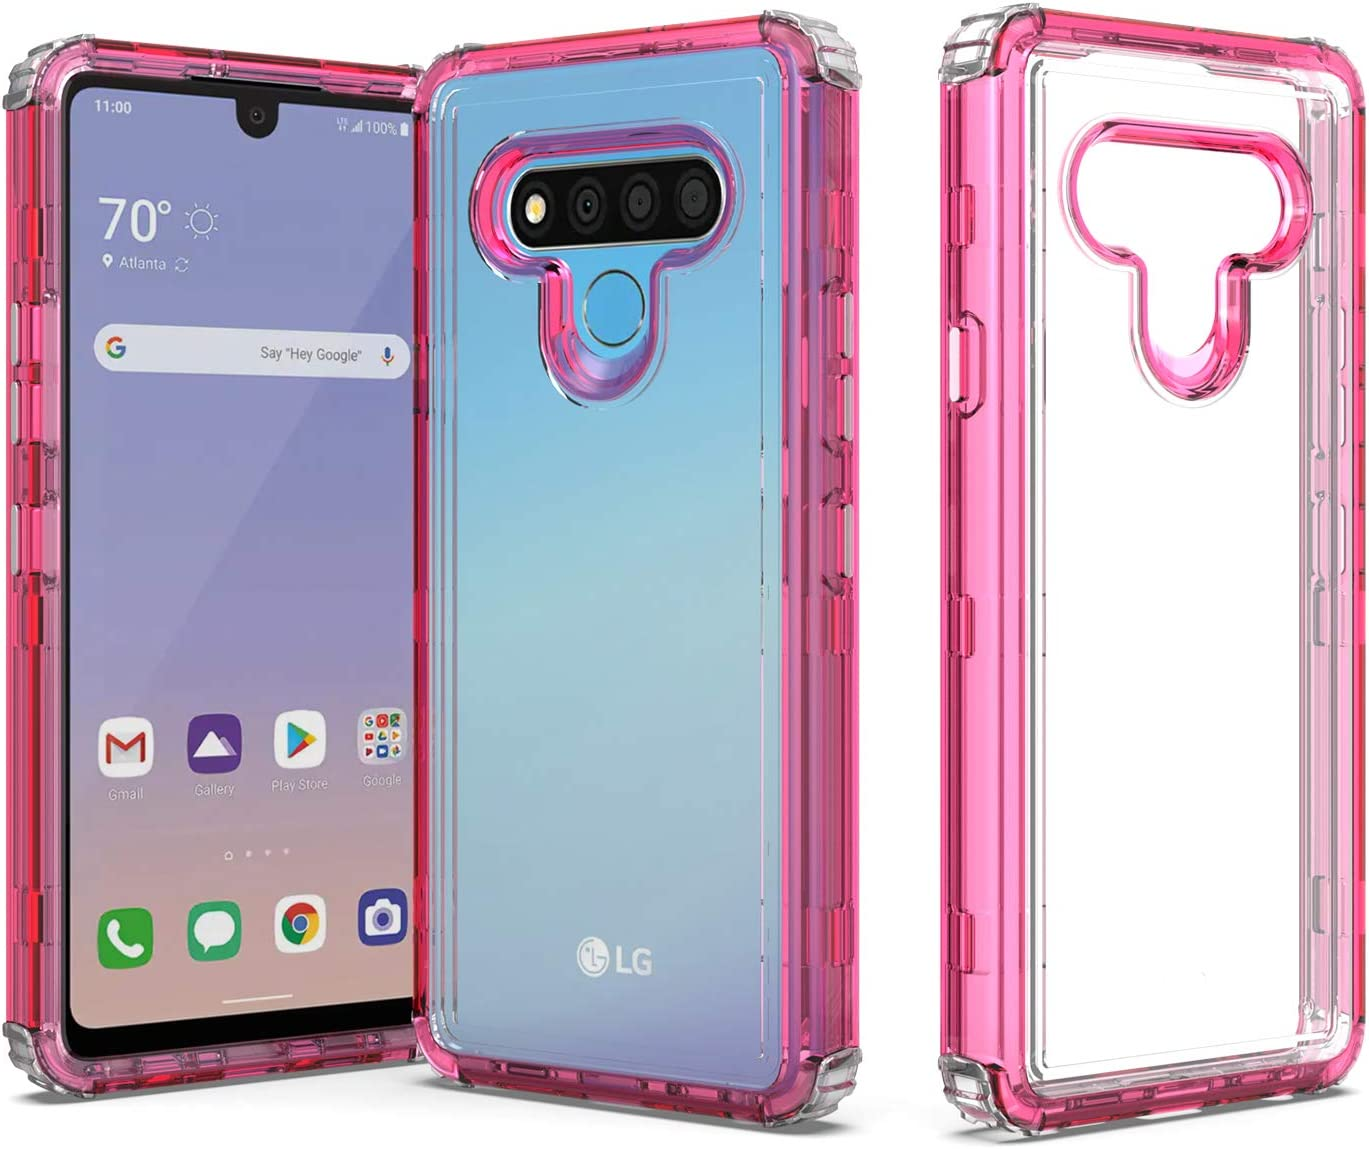 Shinewish Cell Phone Case for LG Stylo 6, 3 in 1 Heavy Duty Shockproof Bumper Full Edge Hybrid Colorful Cover, Hot Pink